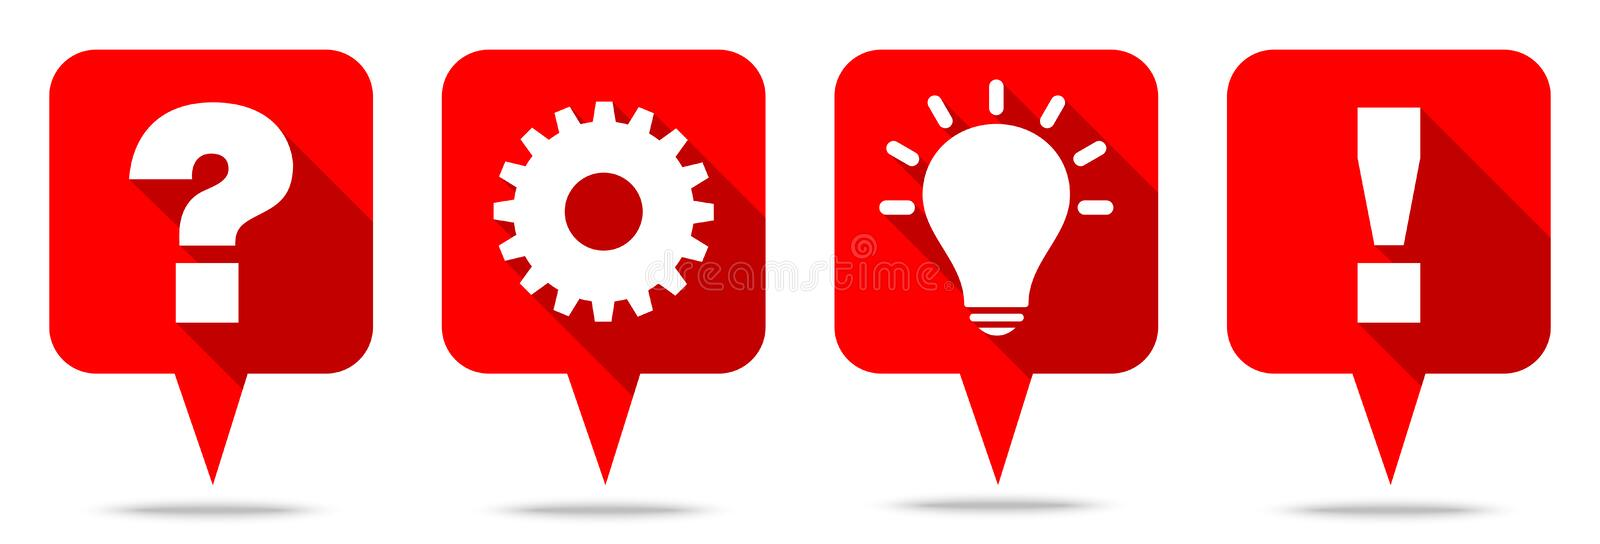 Set Of Four Red Speechbubbles Question Work Idea And Answer stock illustration